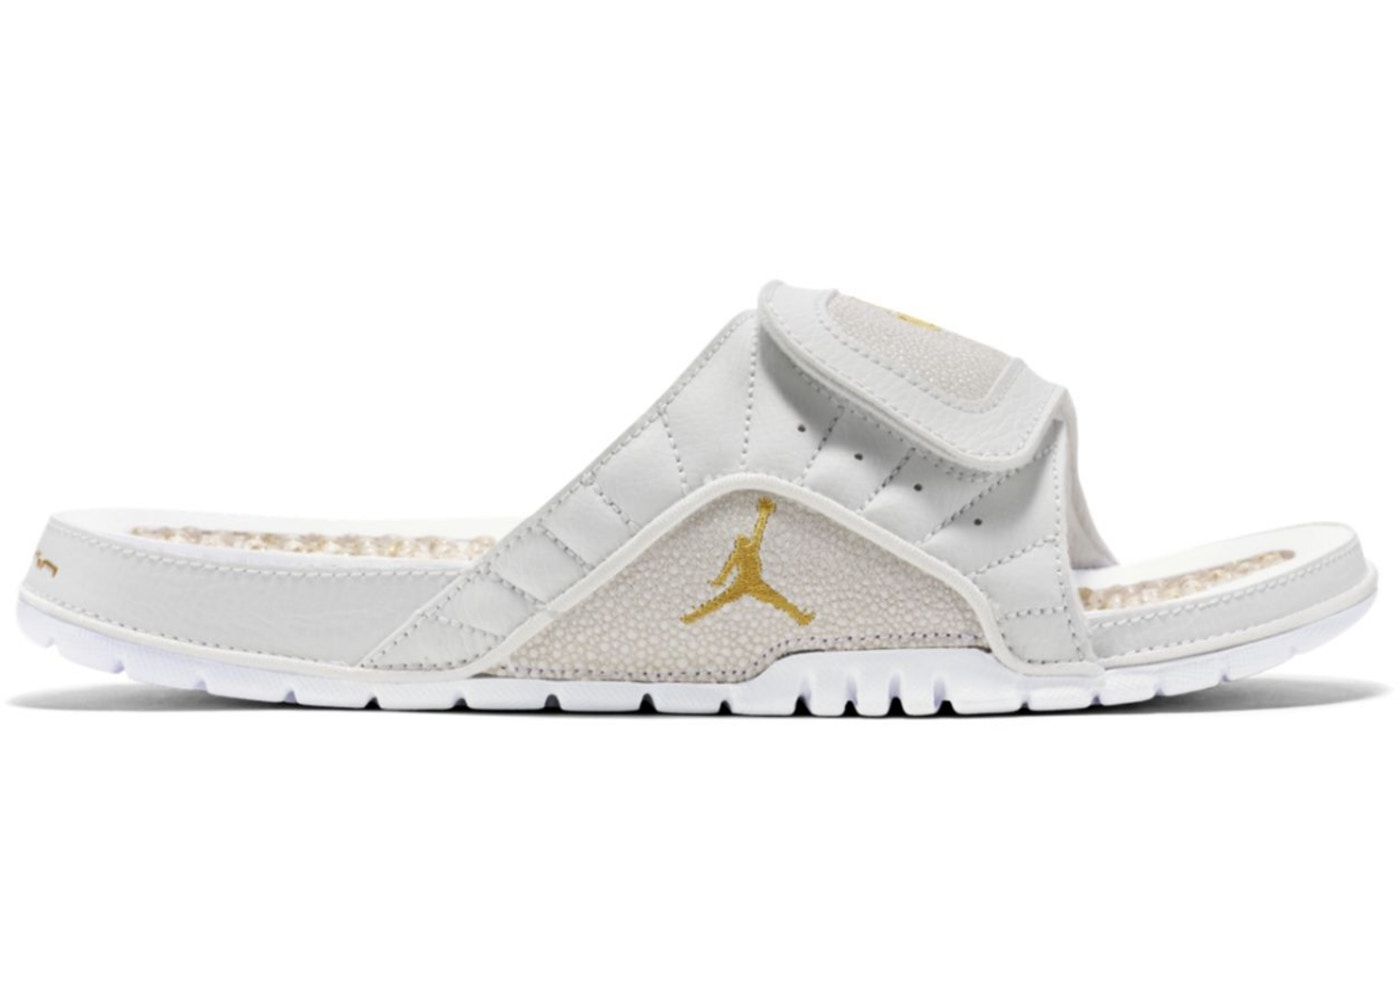 4c55e2aa576f ovo air jordan slides white gold